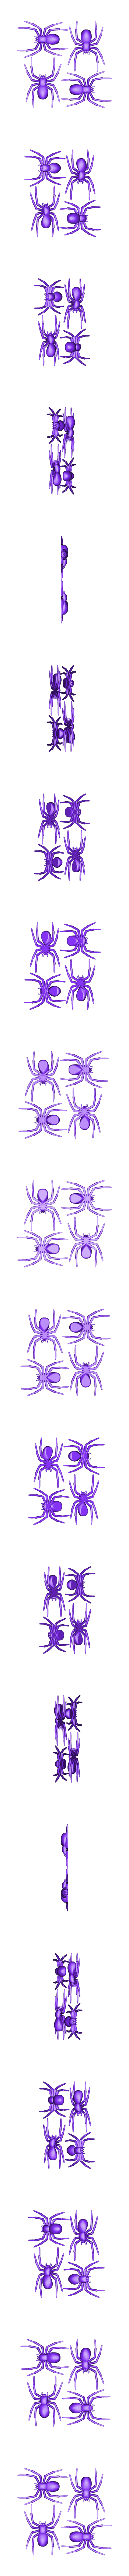 4Spiders.stl Download free STL file House Spider Fixed • 3D printer template, Gophy